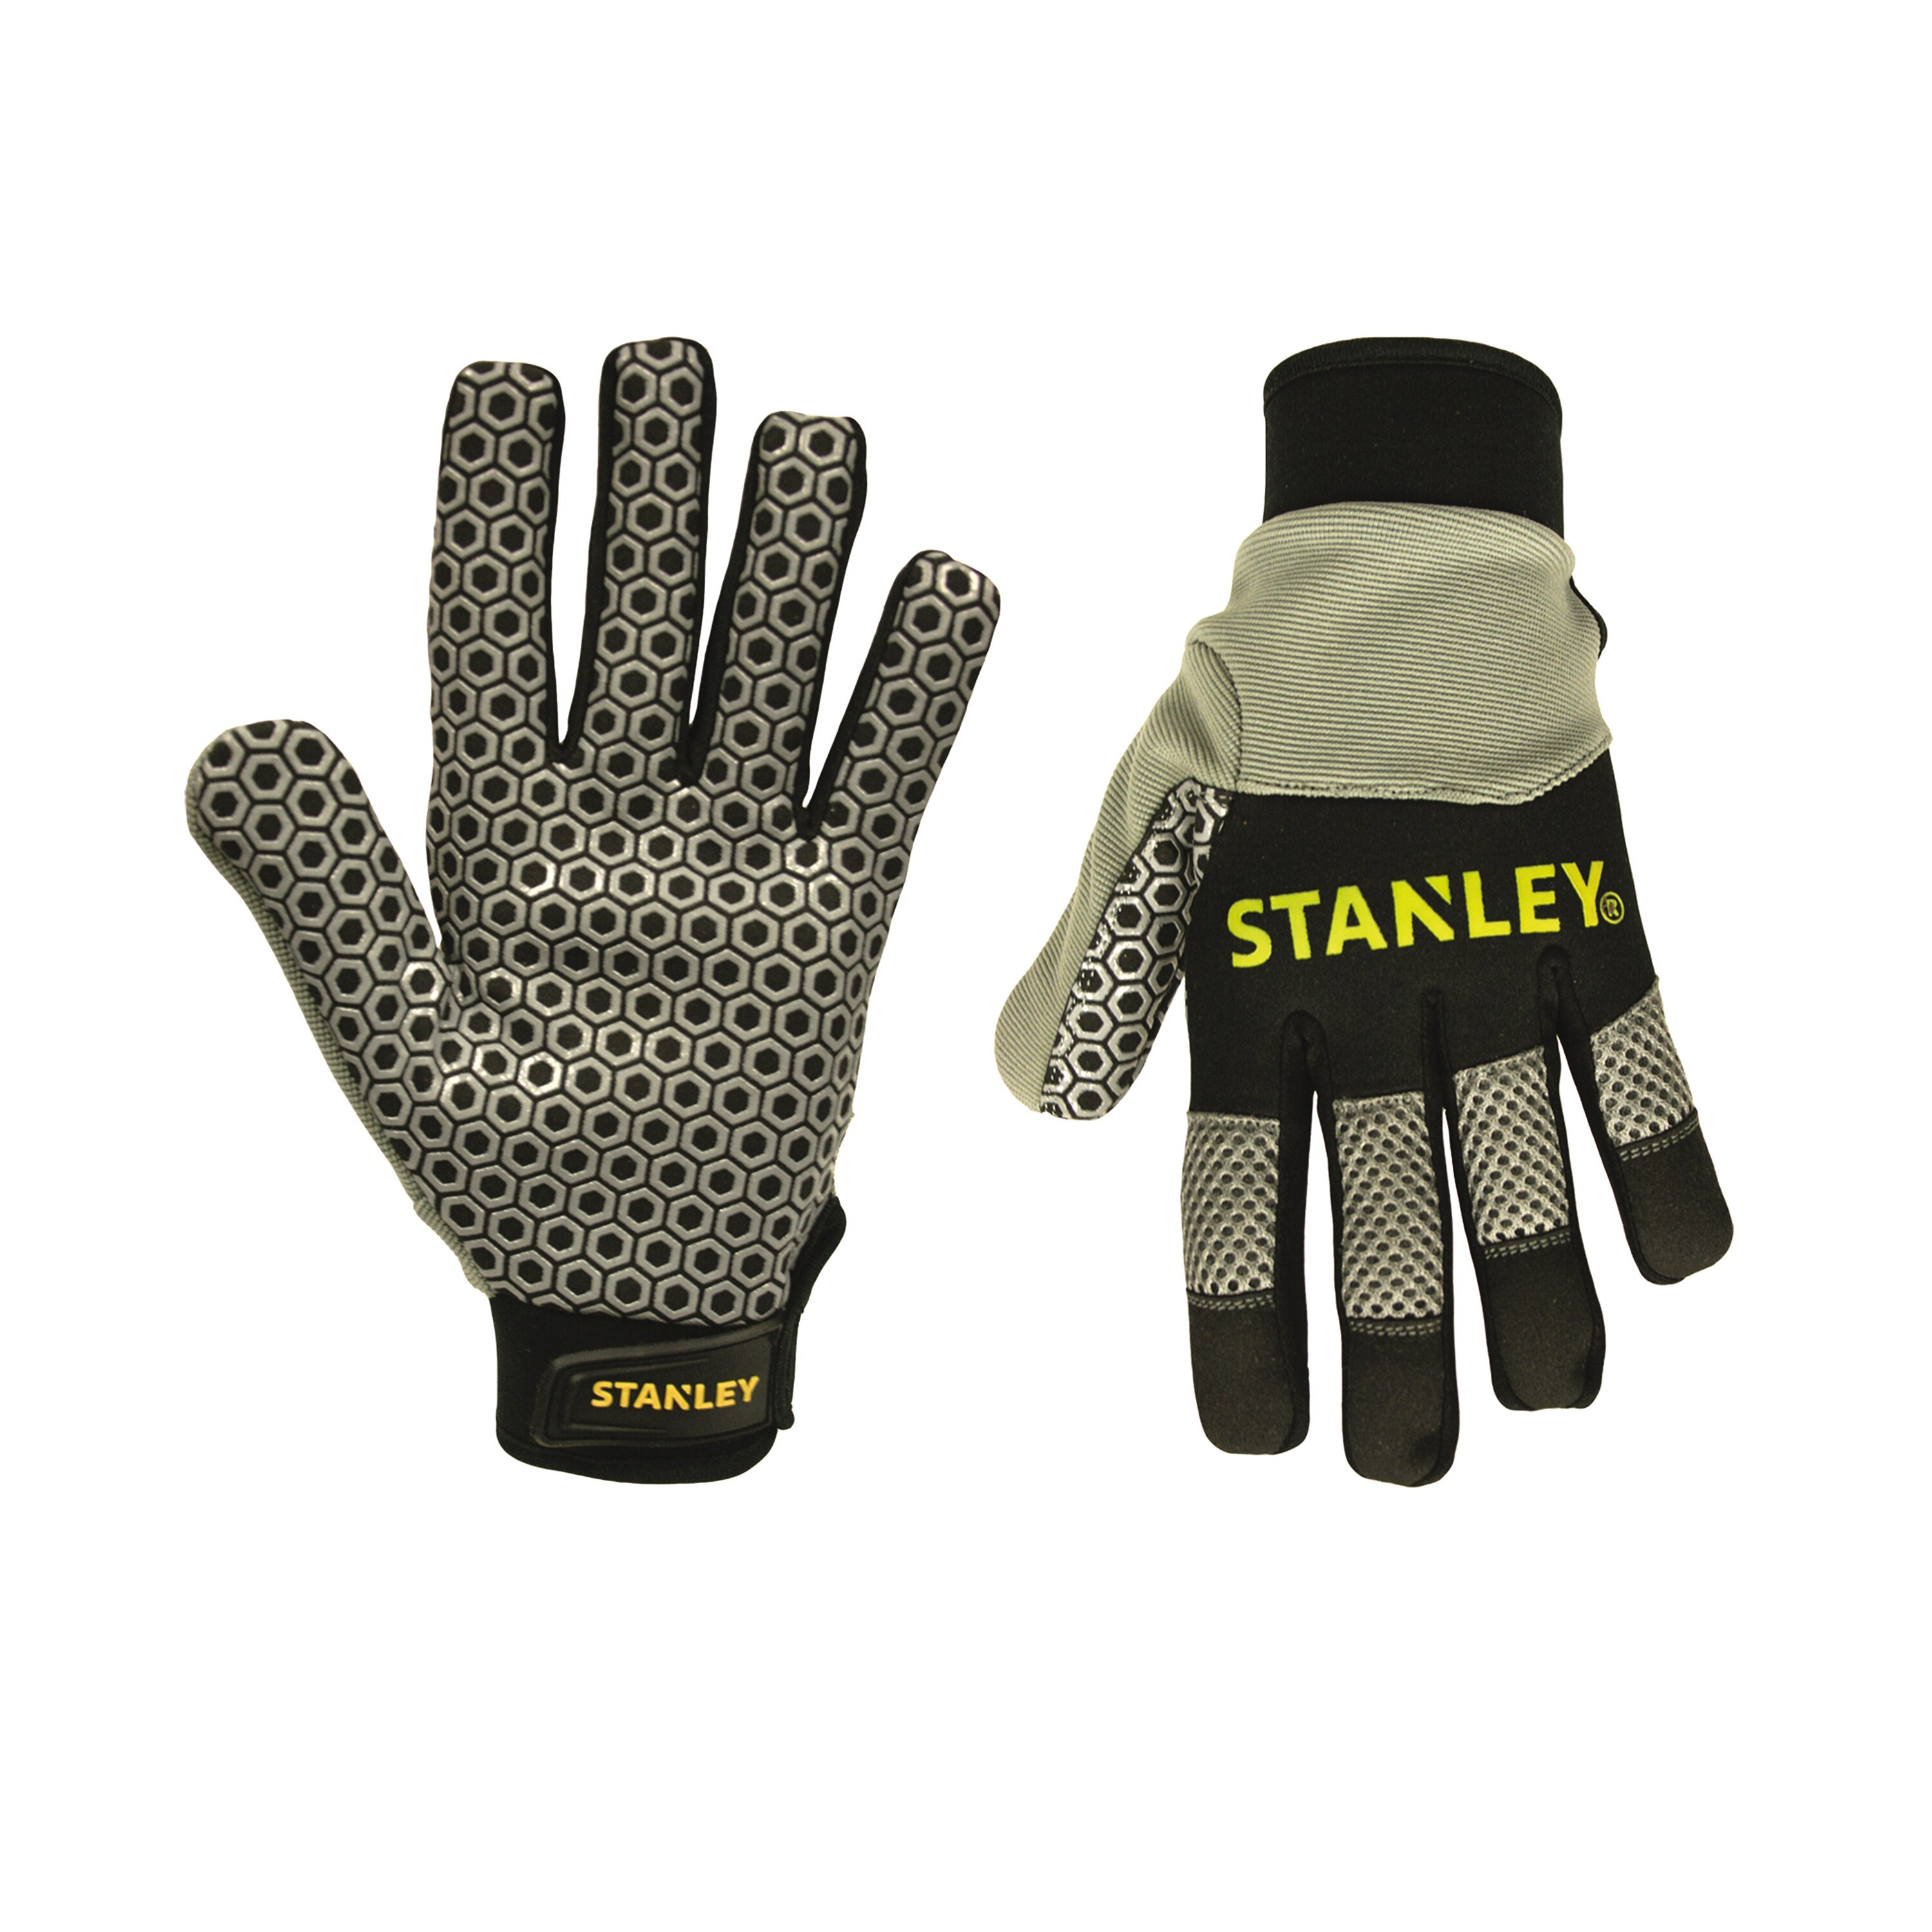 Stanley Tools - Silicone Gripper Synthetic Leather Palm with Neoprene Knuckle Protector - S77701